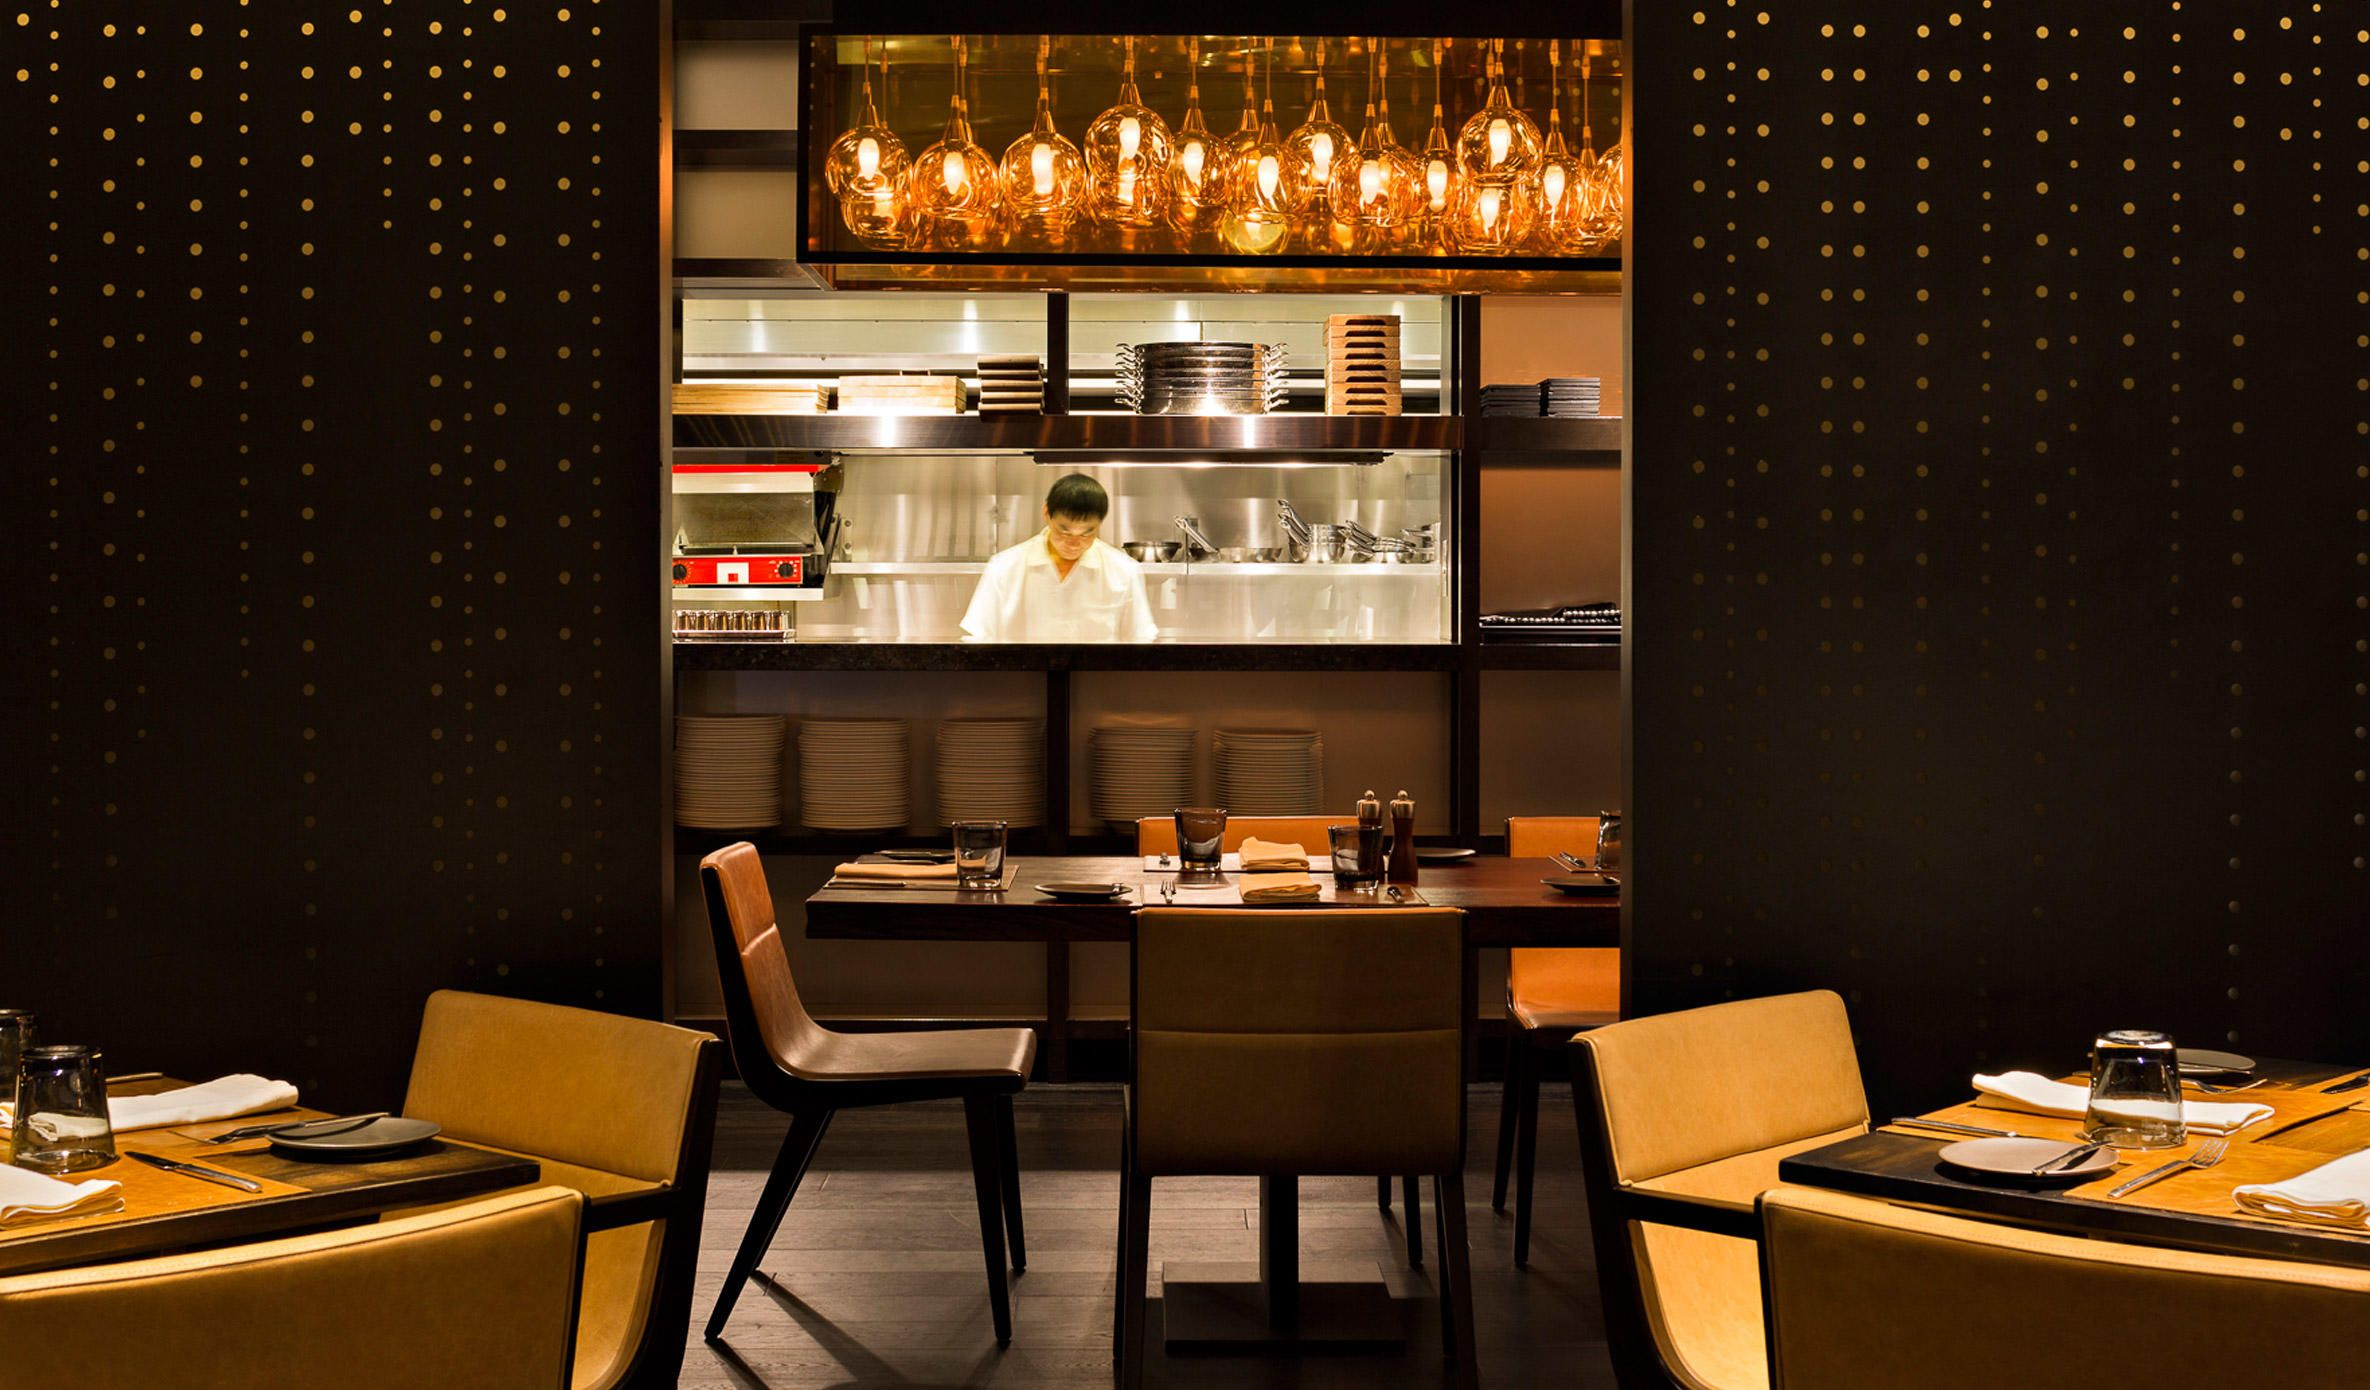 EDG Interior Architecture And Design Serves Up A Sleek And Homey Dining  Environment For Patrons Visiting The Recently Revamped Flint Grill And Bar  At The JW ...